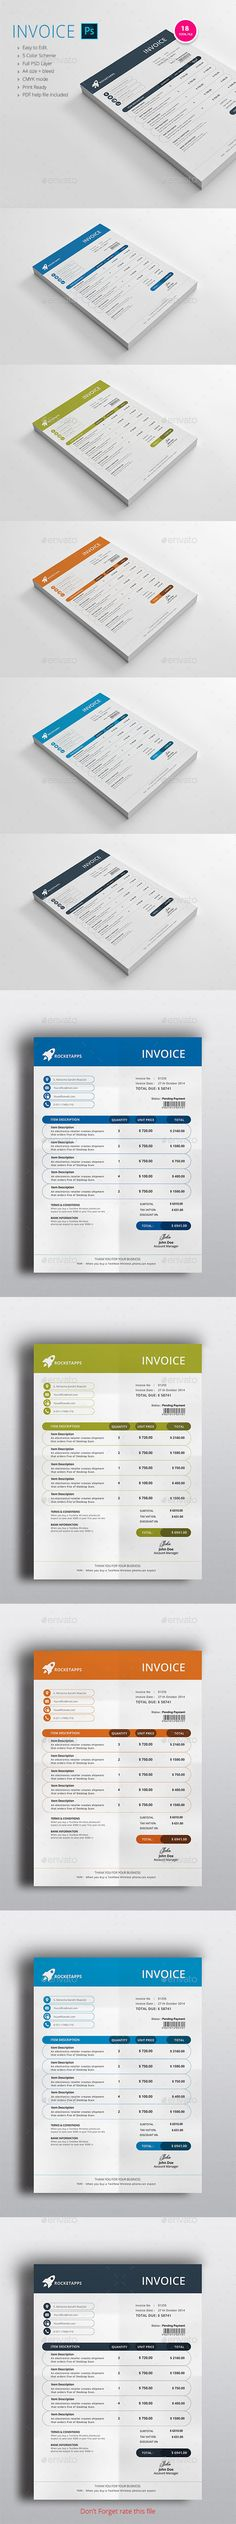 Material Invoice - invoice style